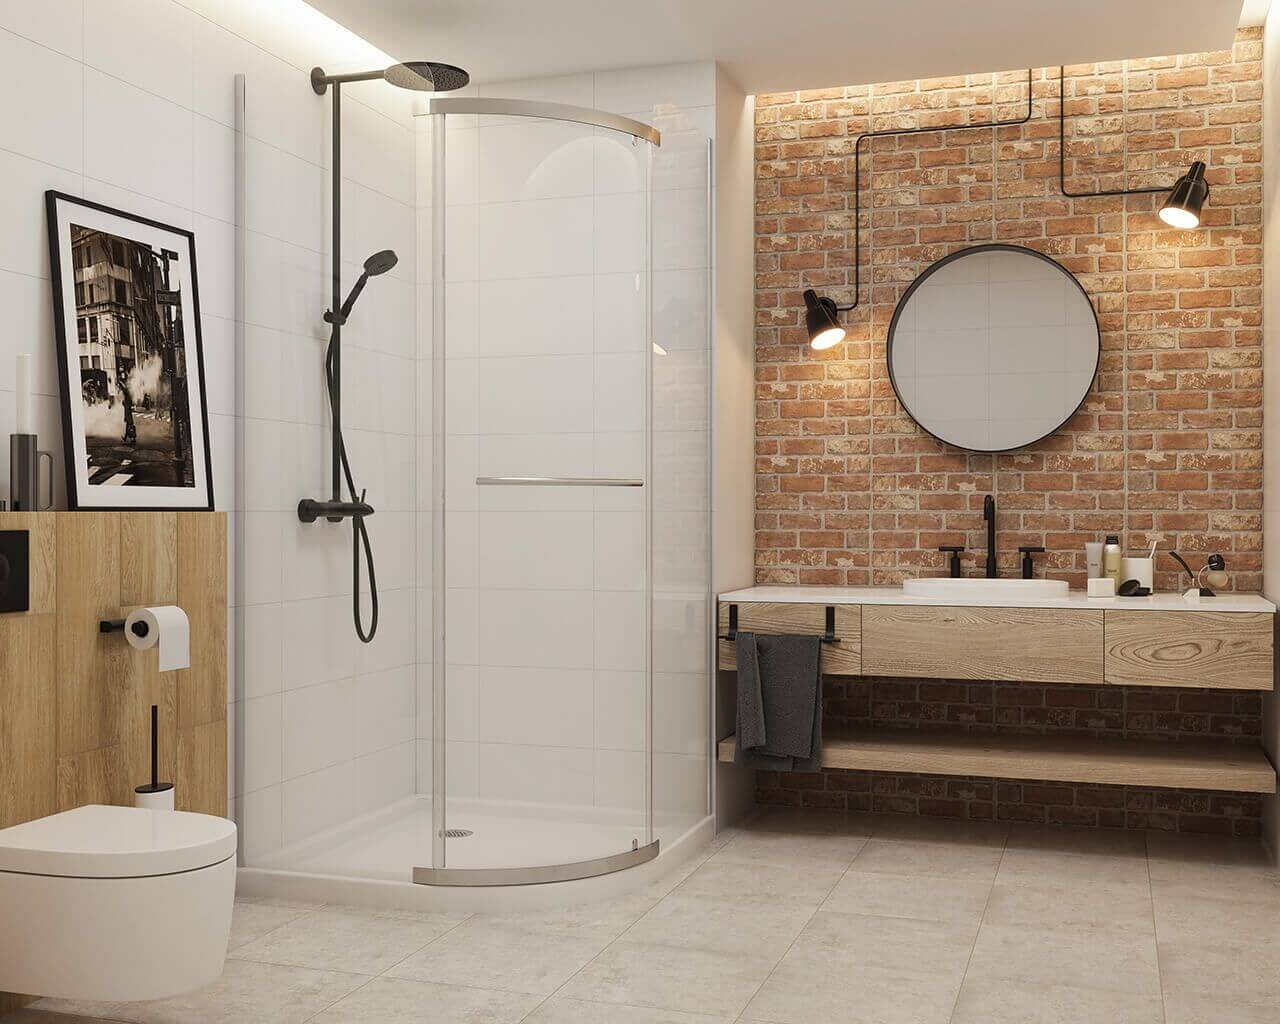 How to choose tiles for the bathroom? 10 most popular solutions!